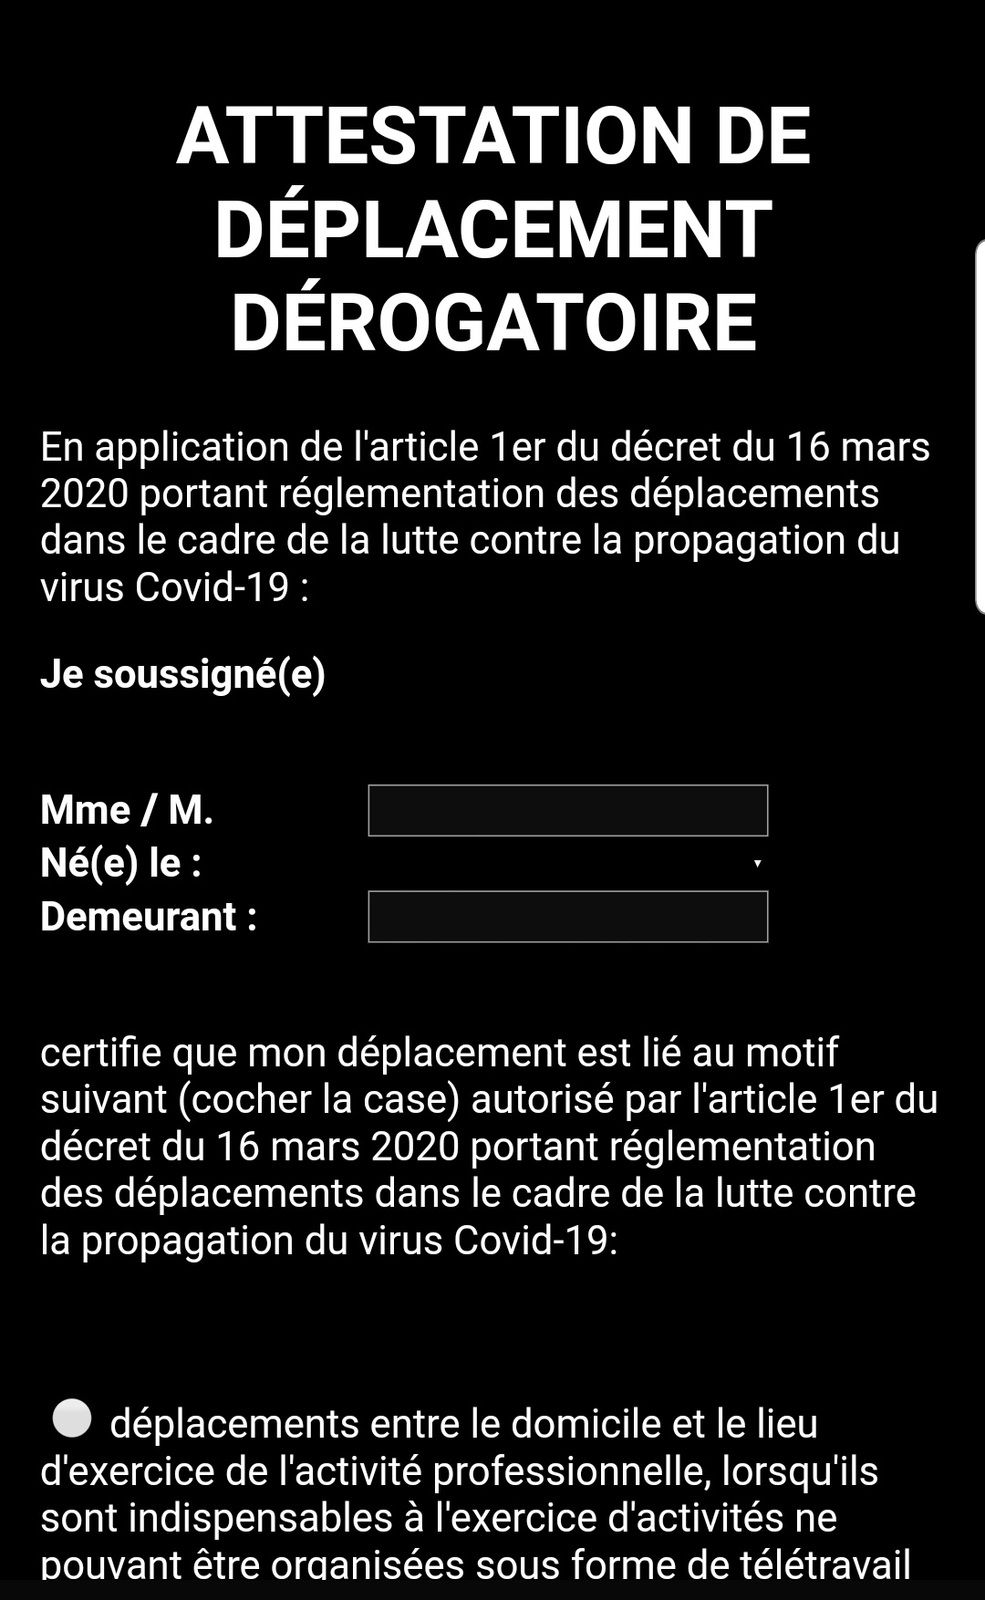 ATTENTION AUX FAUSSES ATTESTATIONS DE SORTIES